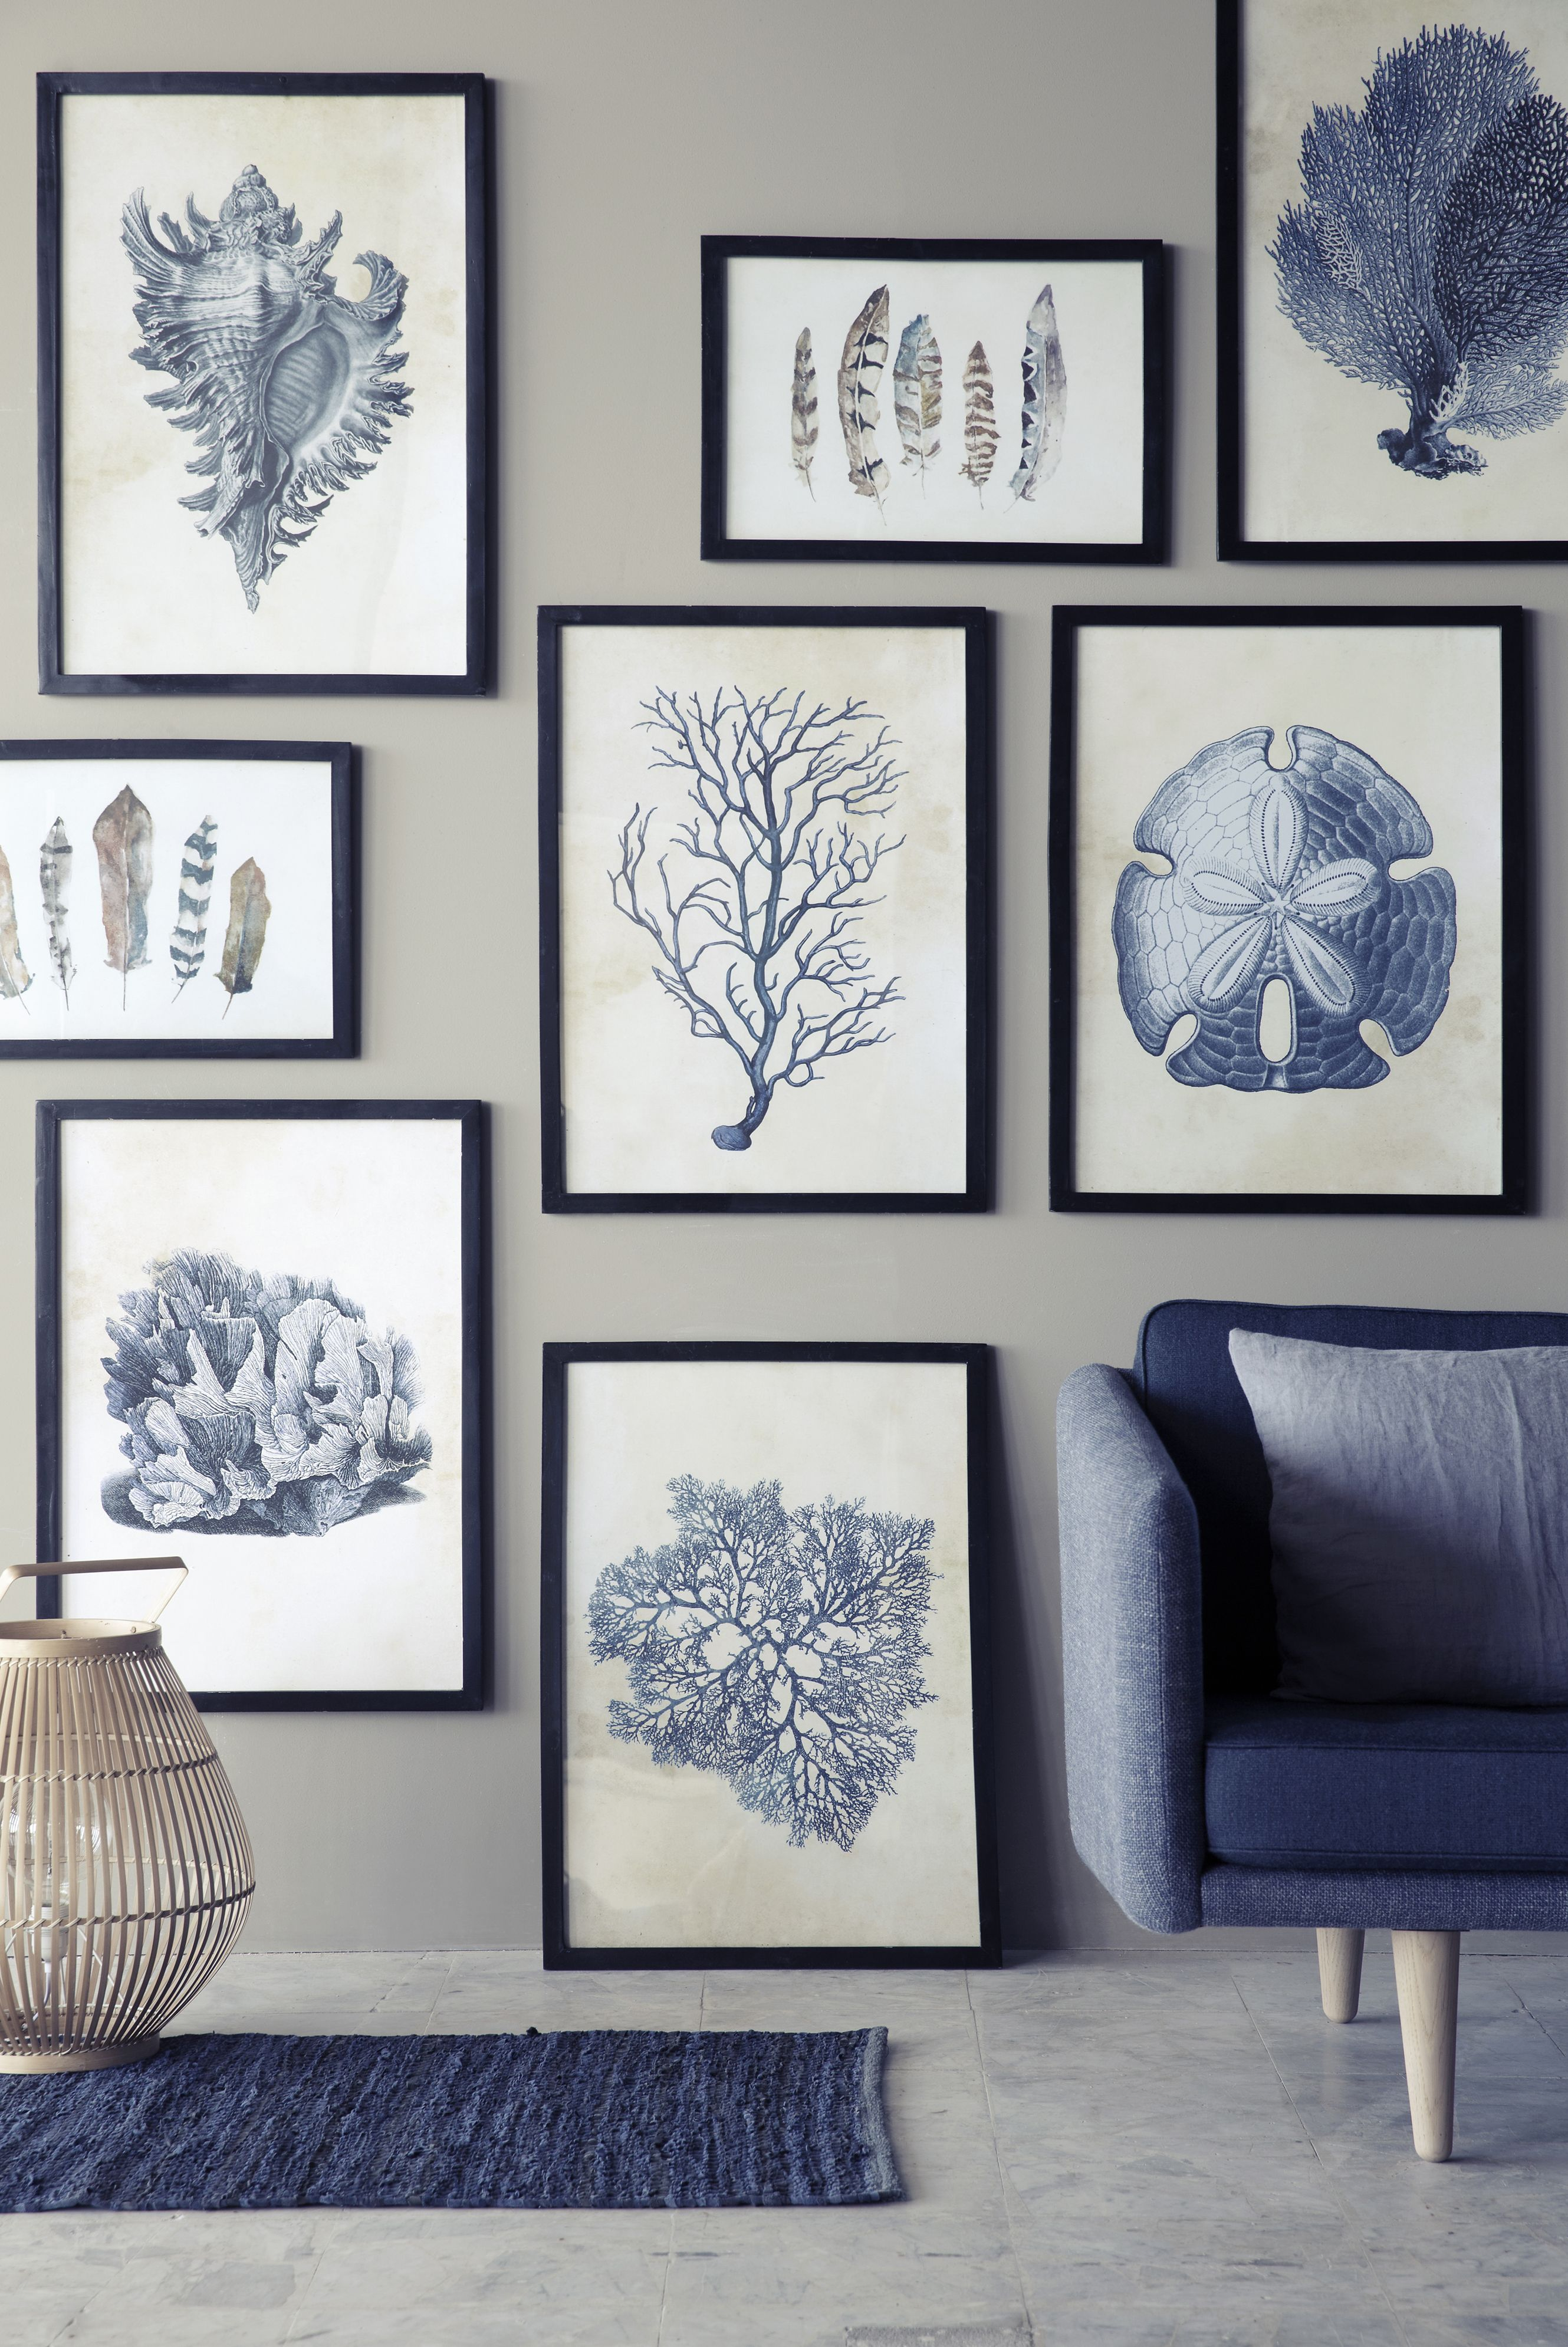 interiors dna broste copenhagen | Copenhagen, Living rooms and Artwork